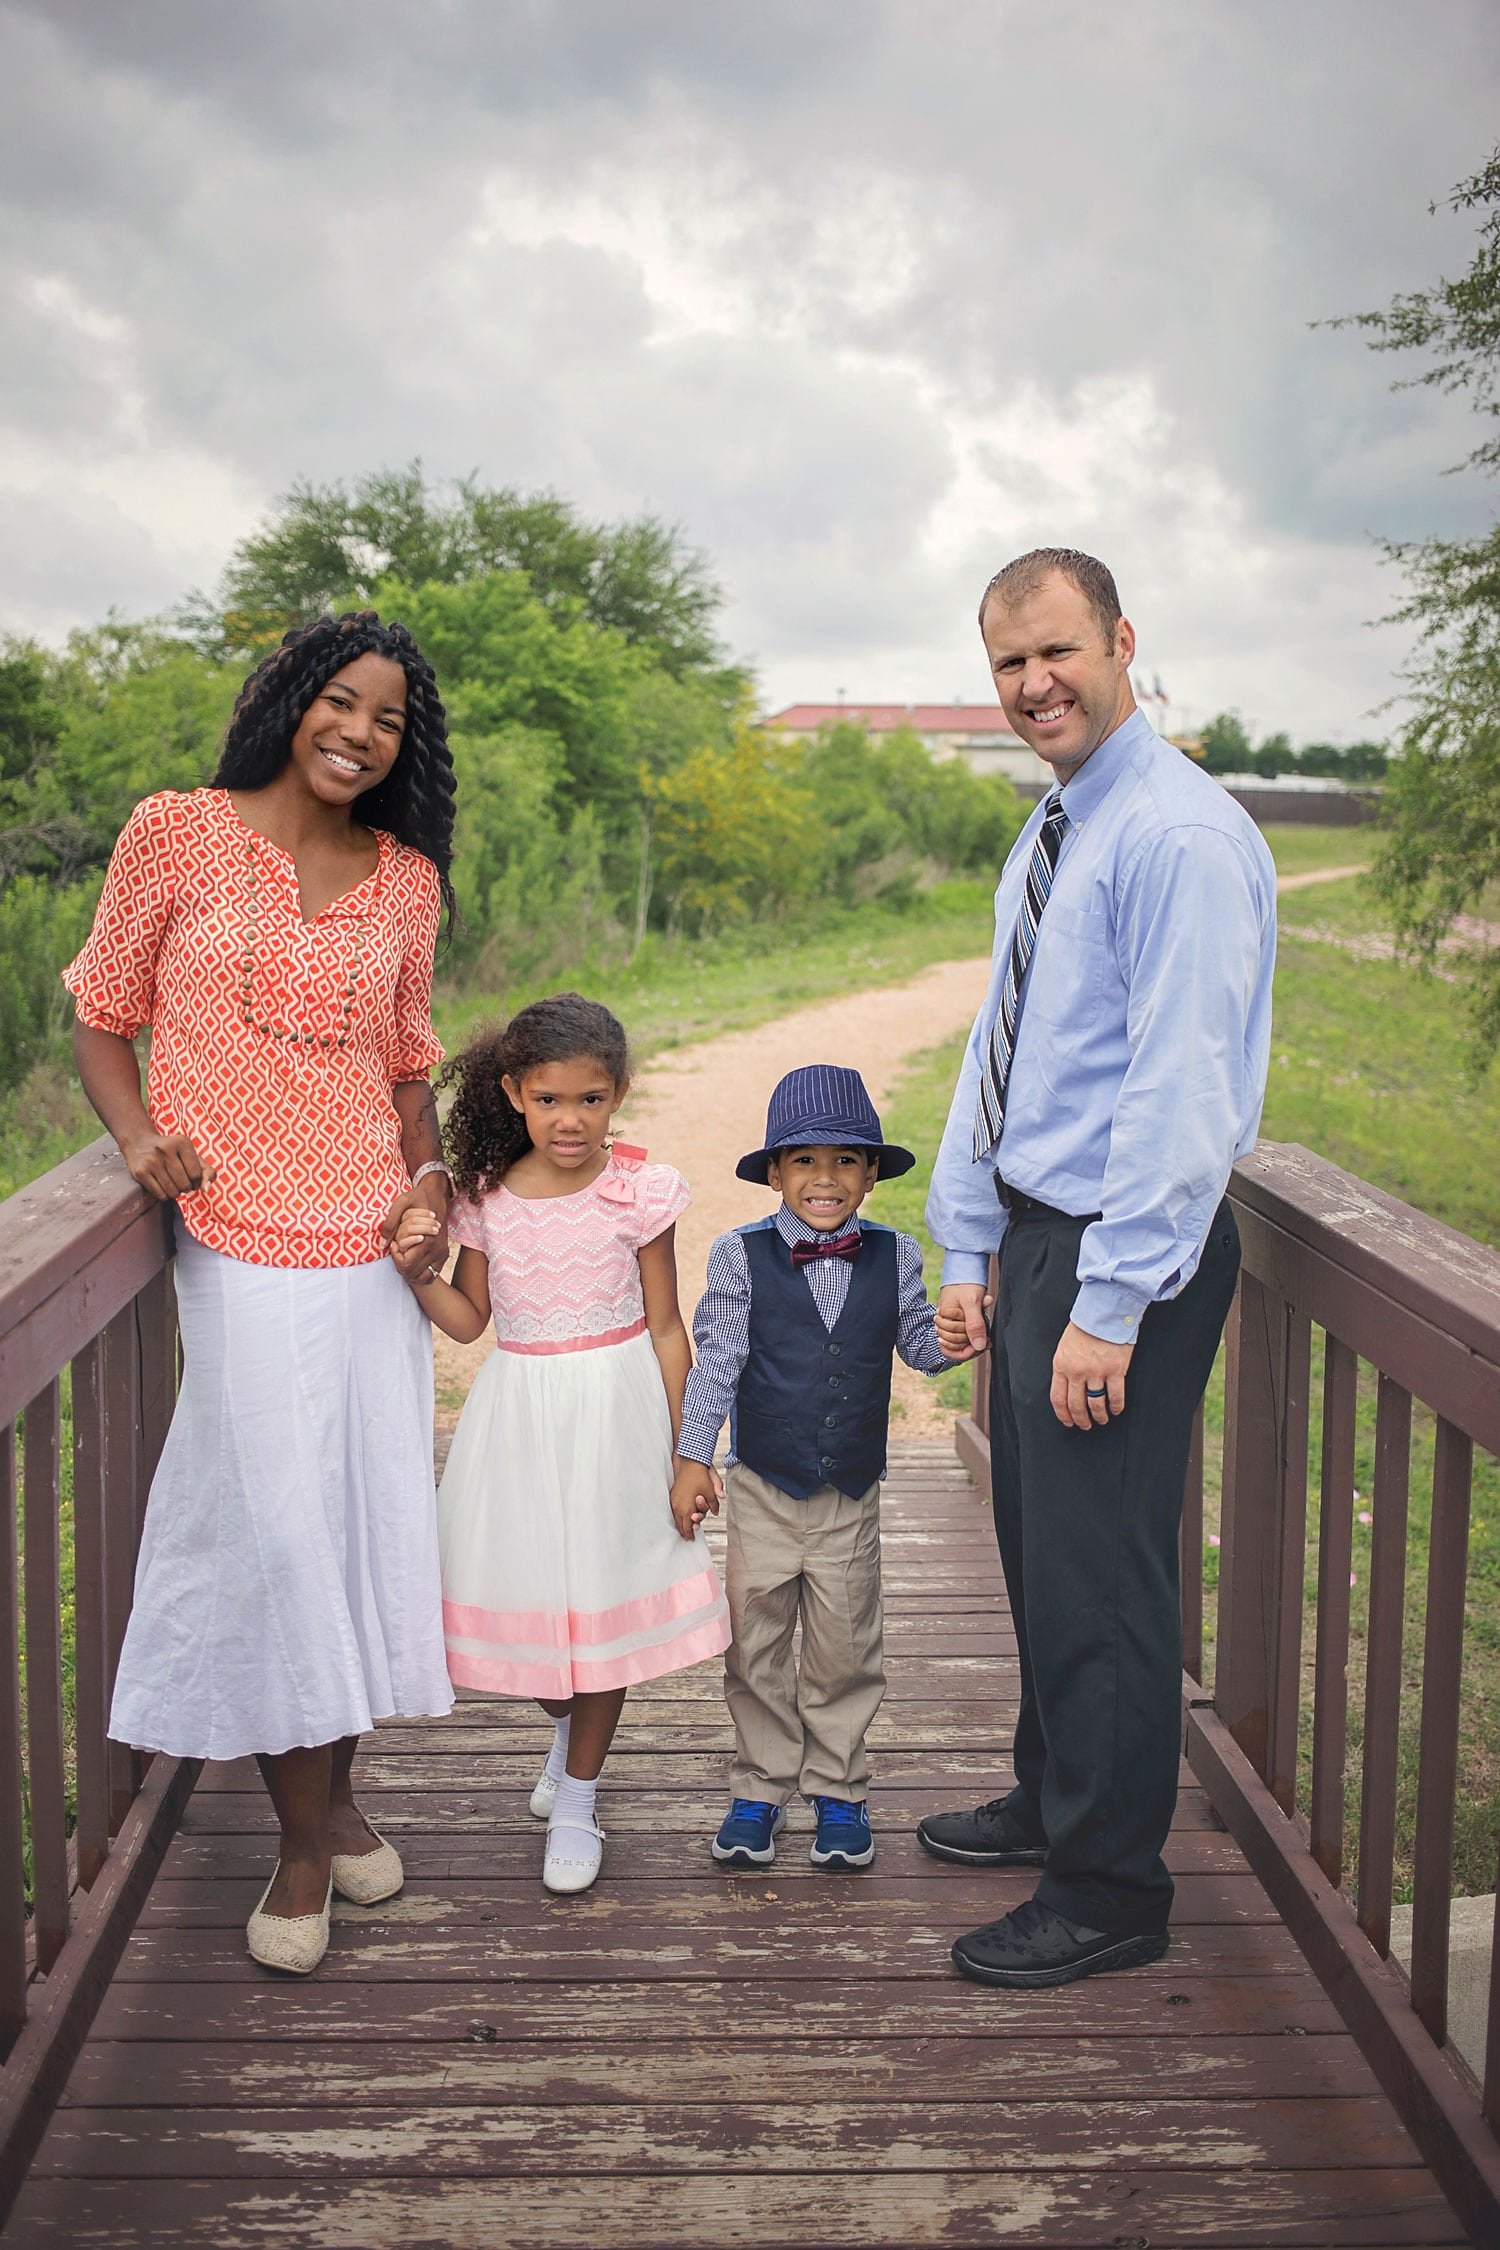 Interracial Family Easter photo for 2017. Sharing my beliefs.